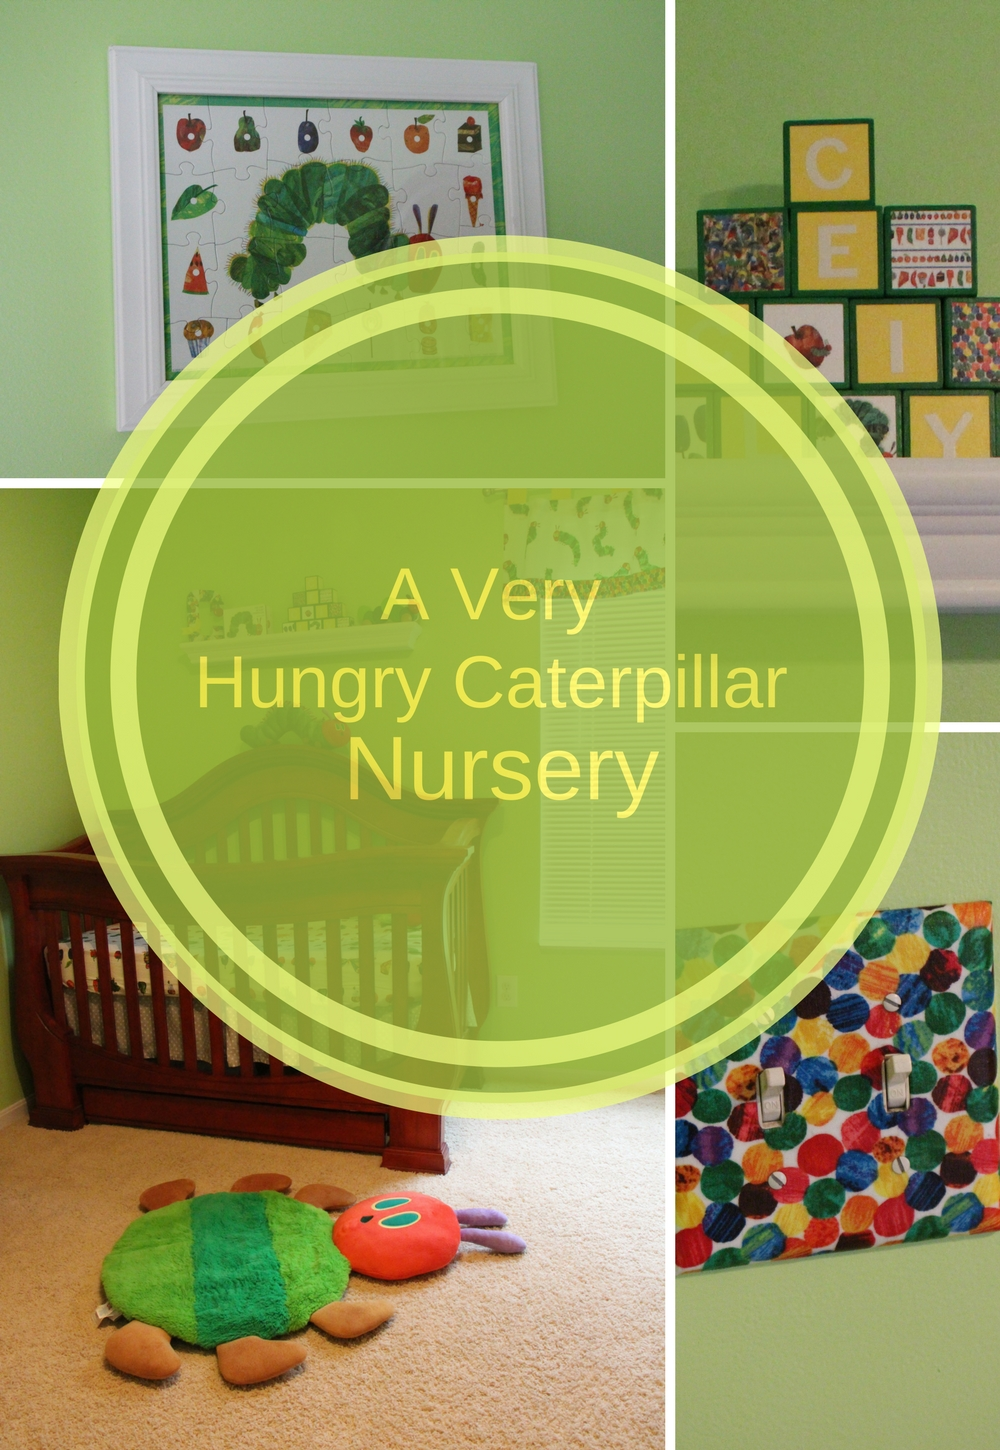 A Very Hungry Caterpillar Nursery Theme!